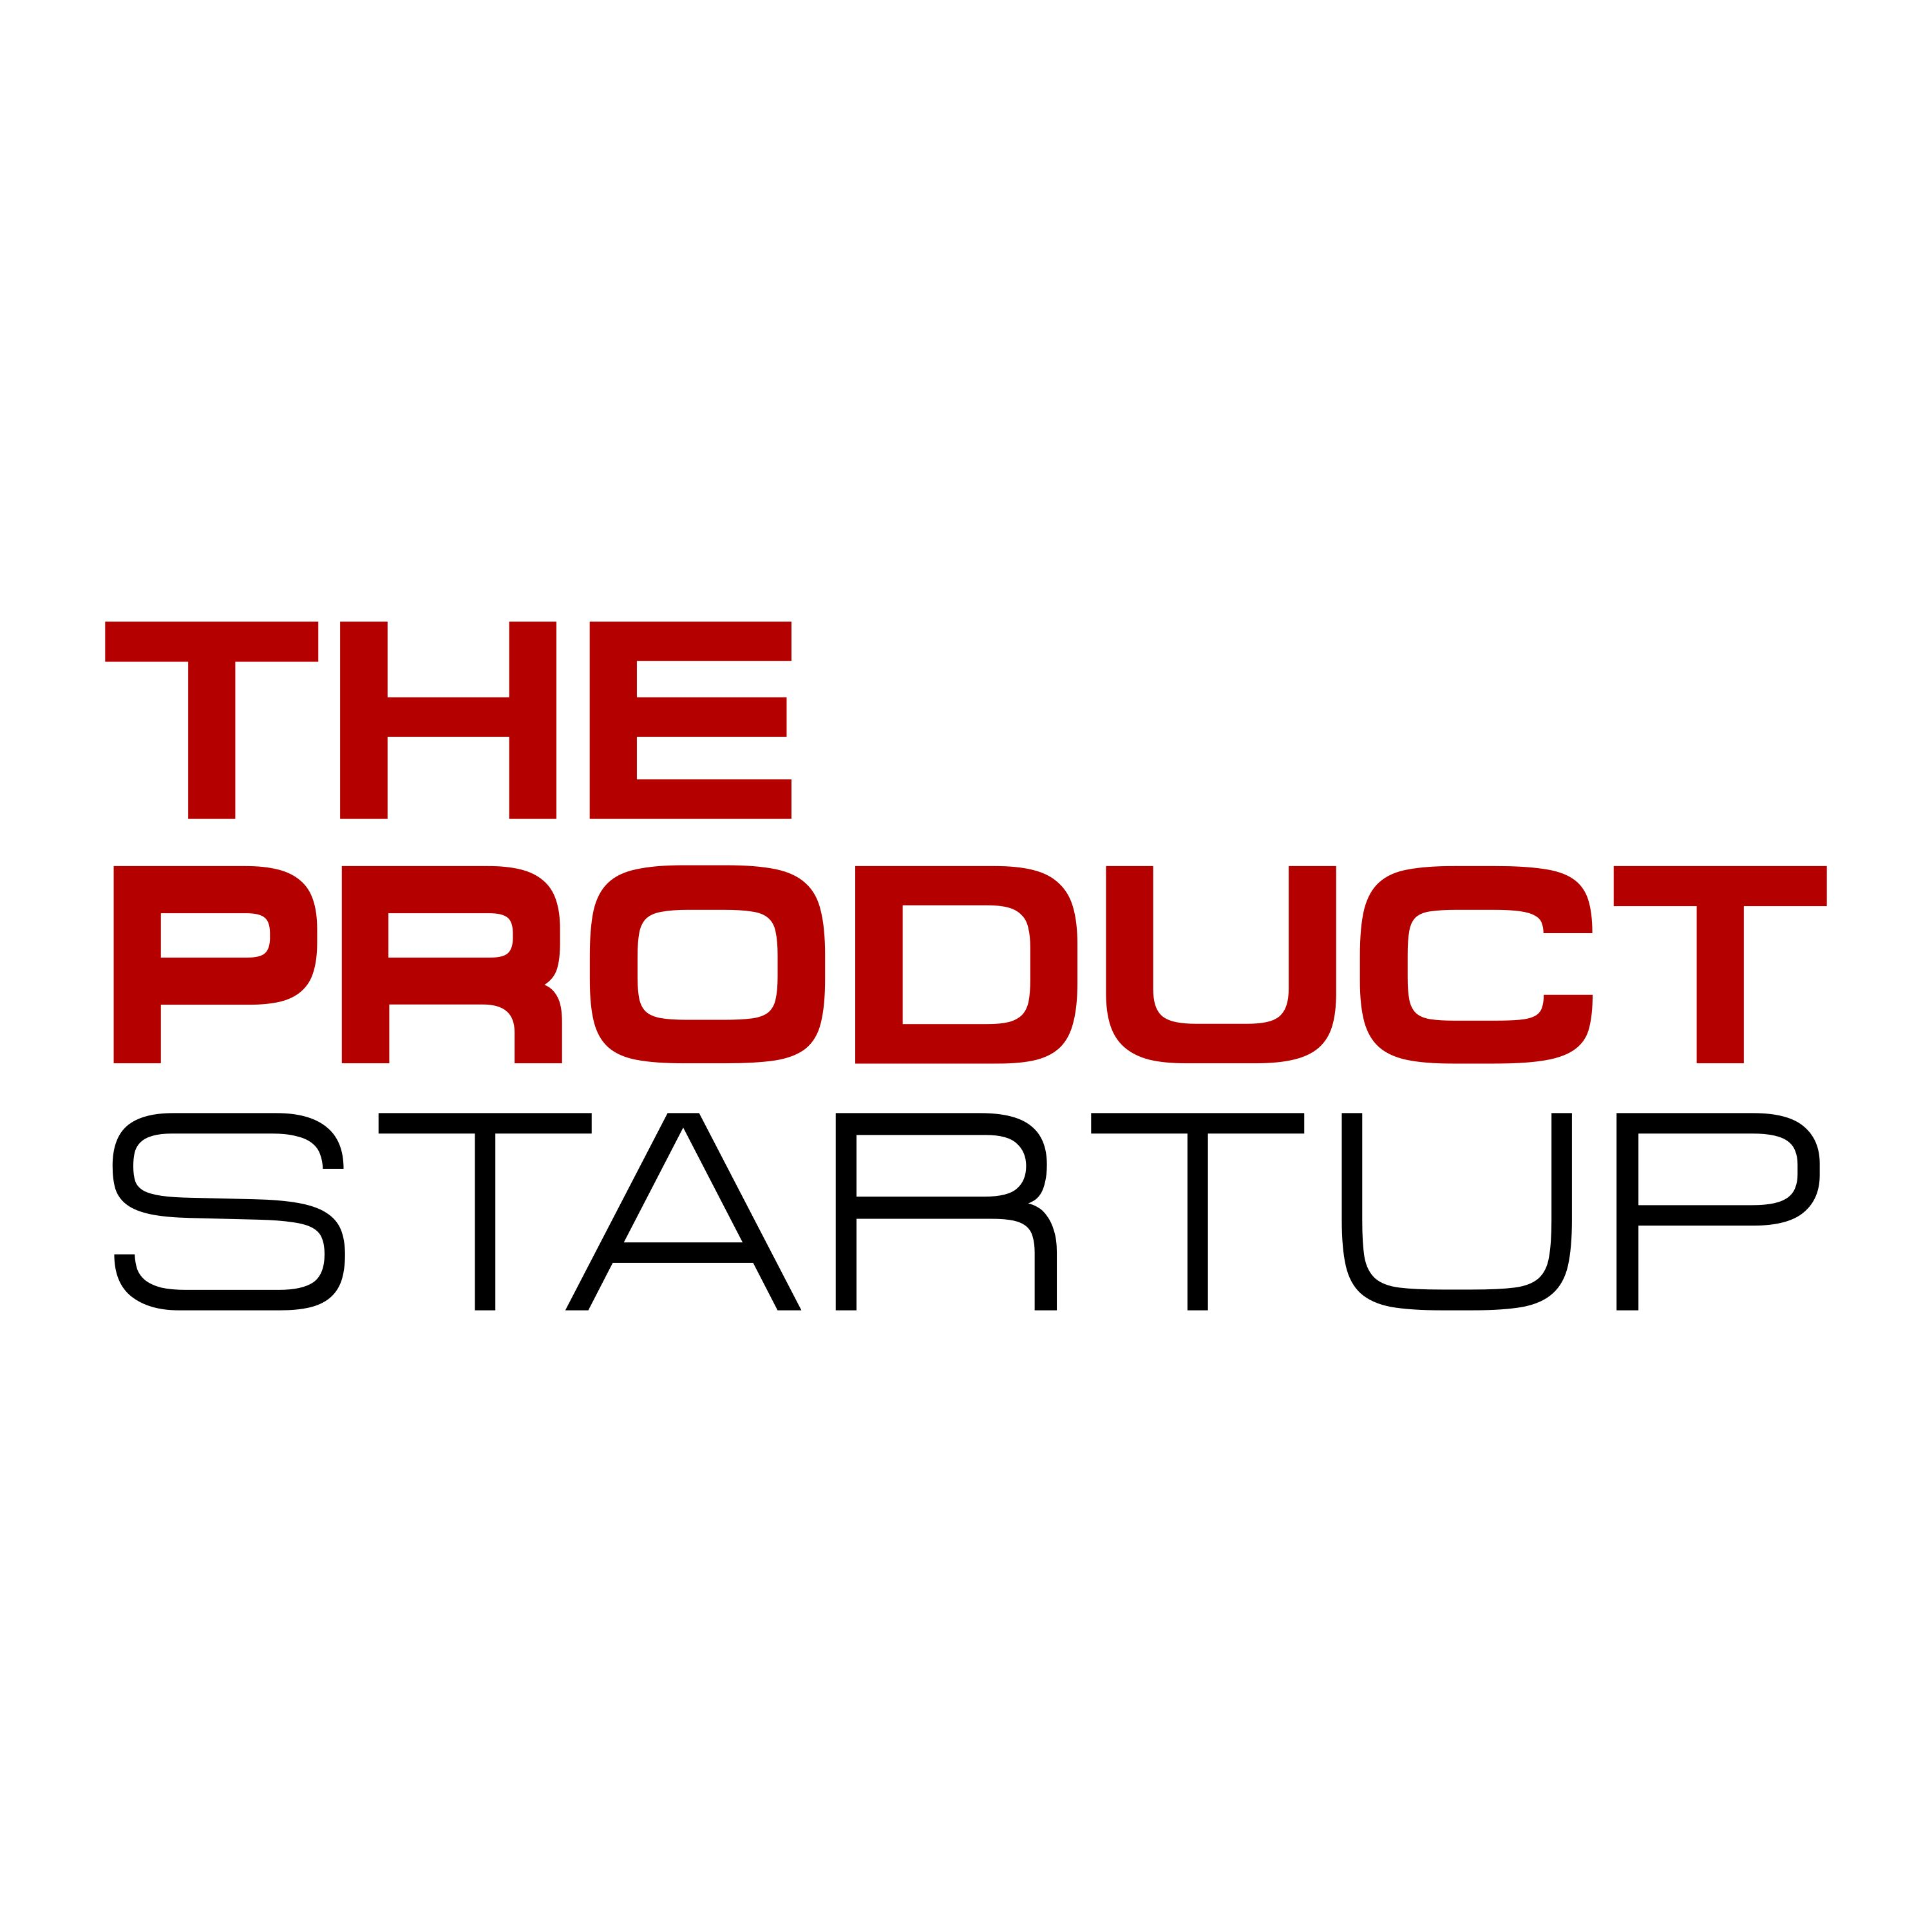 052 - The business model behind custom window coverings, Alice Orozco of Pret-a-Portiere